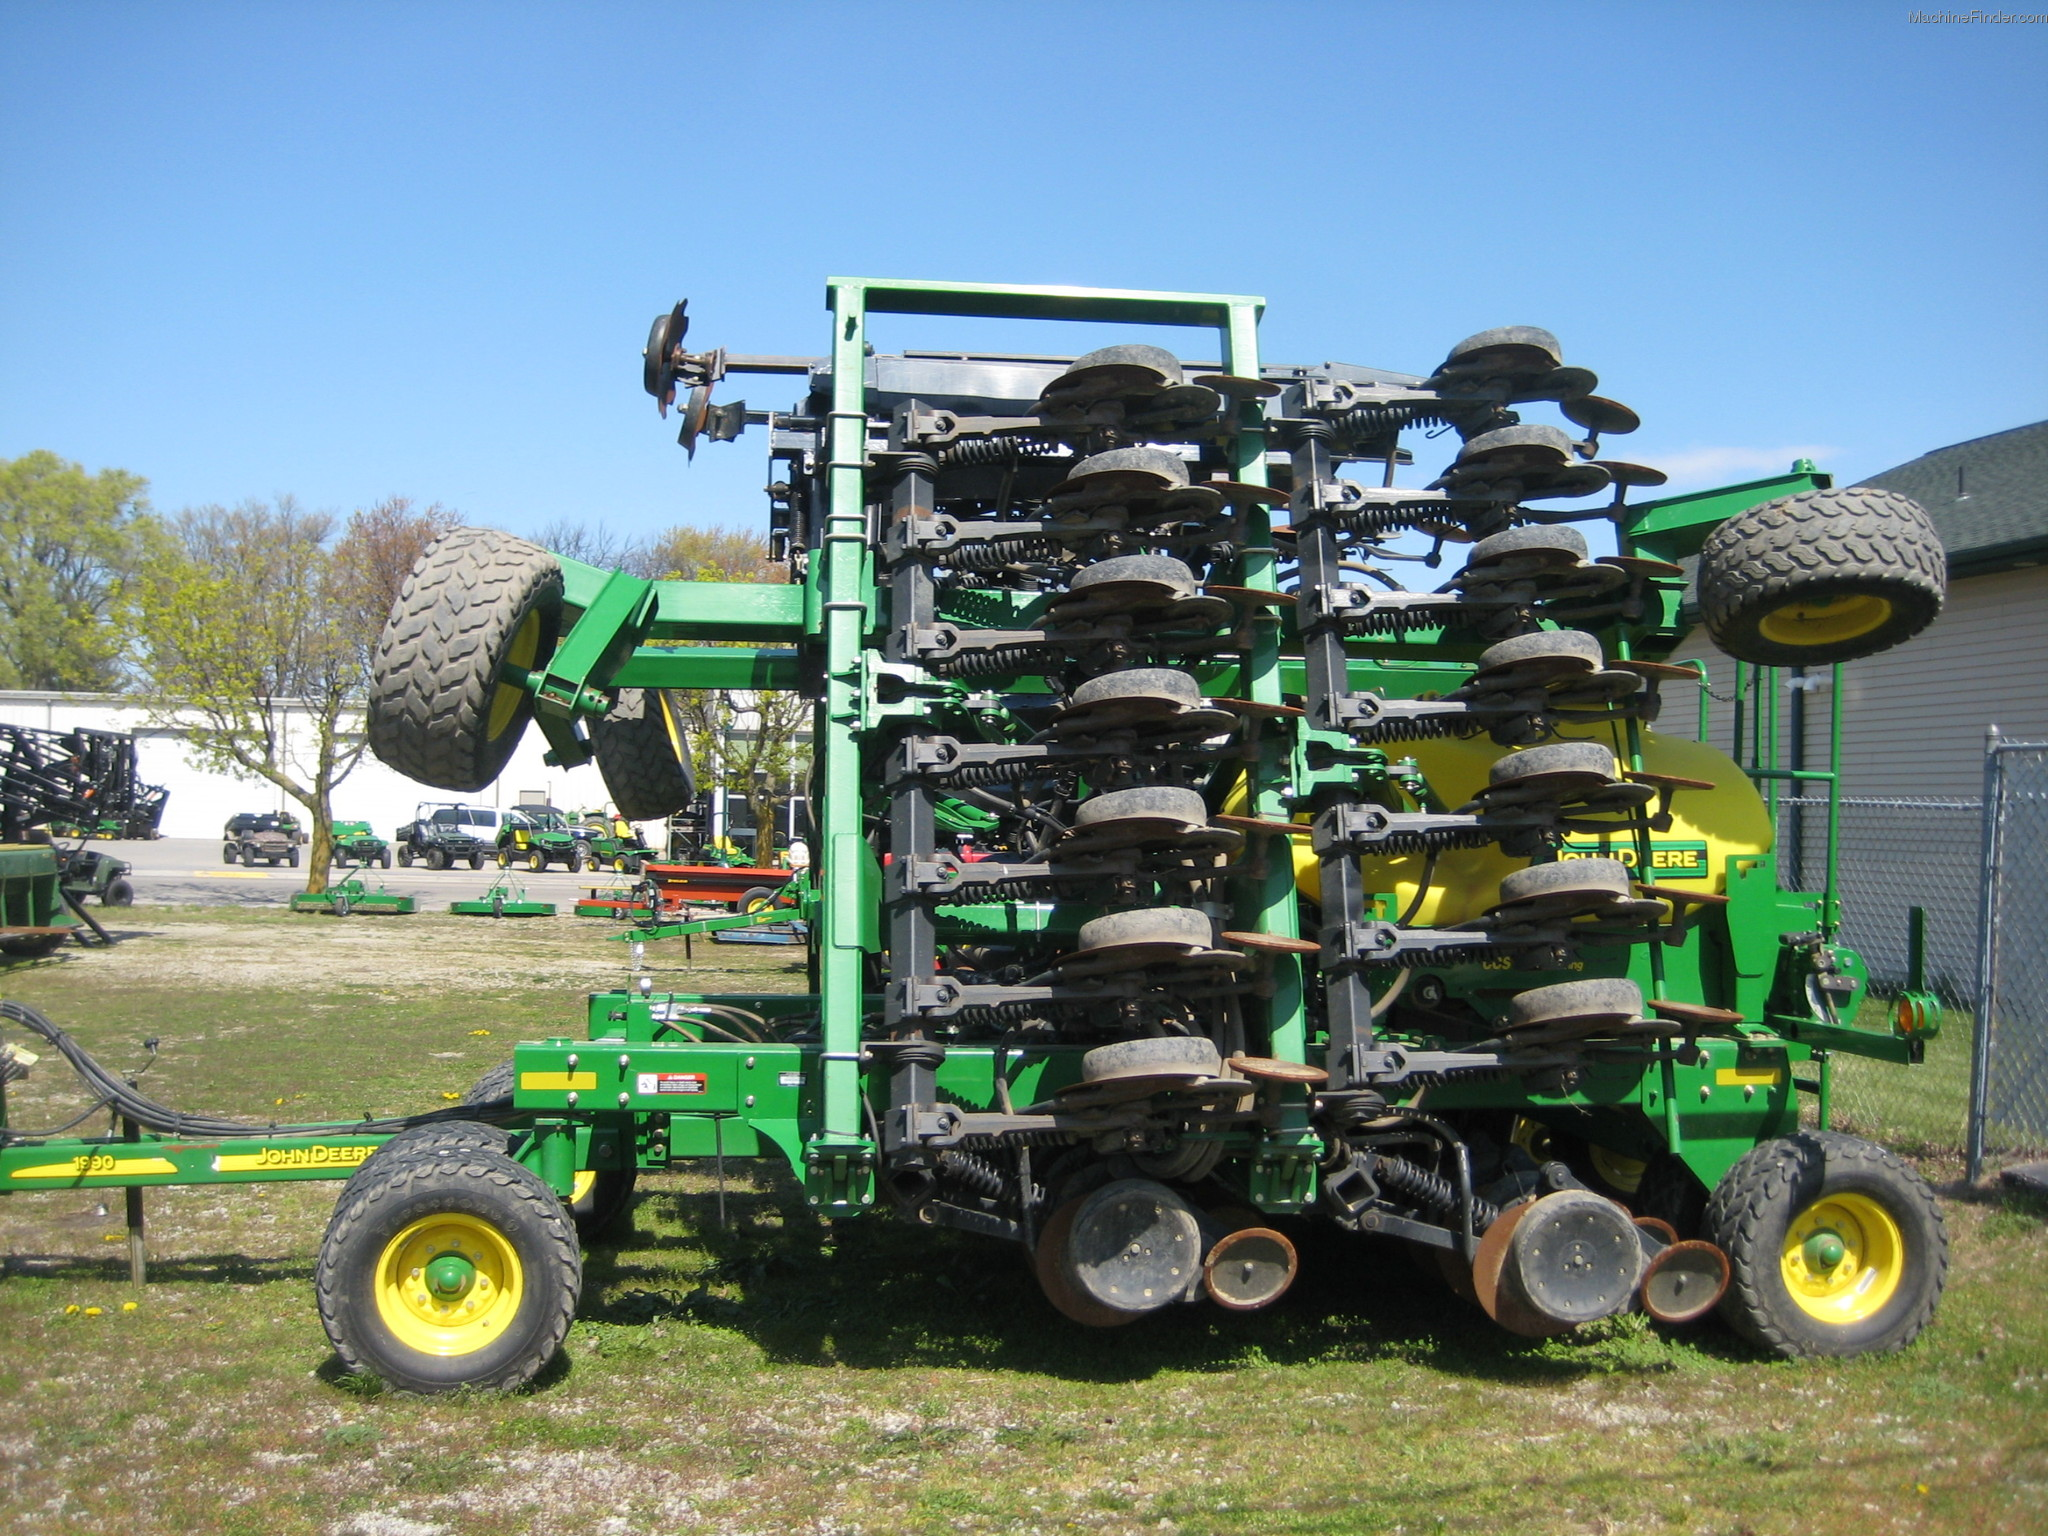 2010 John Deere 1990 Planting & Seeding - Air Drills ...